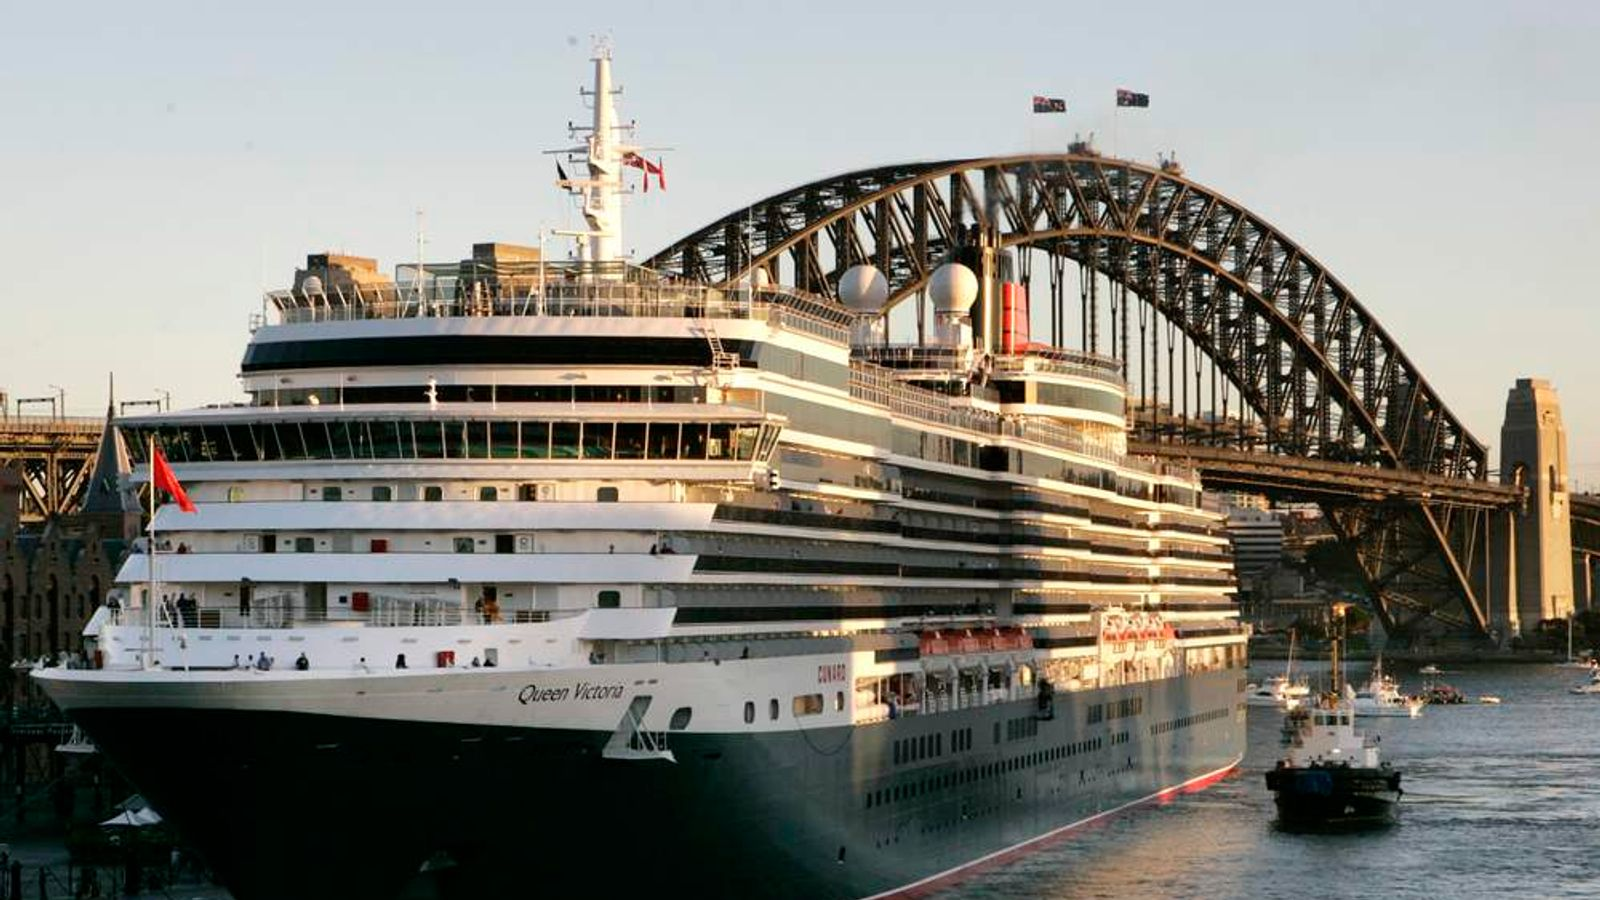 Cunard's newest ocean liner the Victoria is berthed at Circular Quay in Sydney